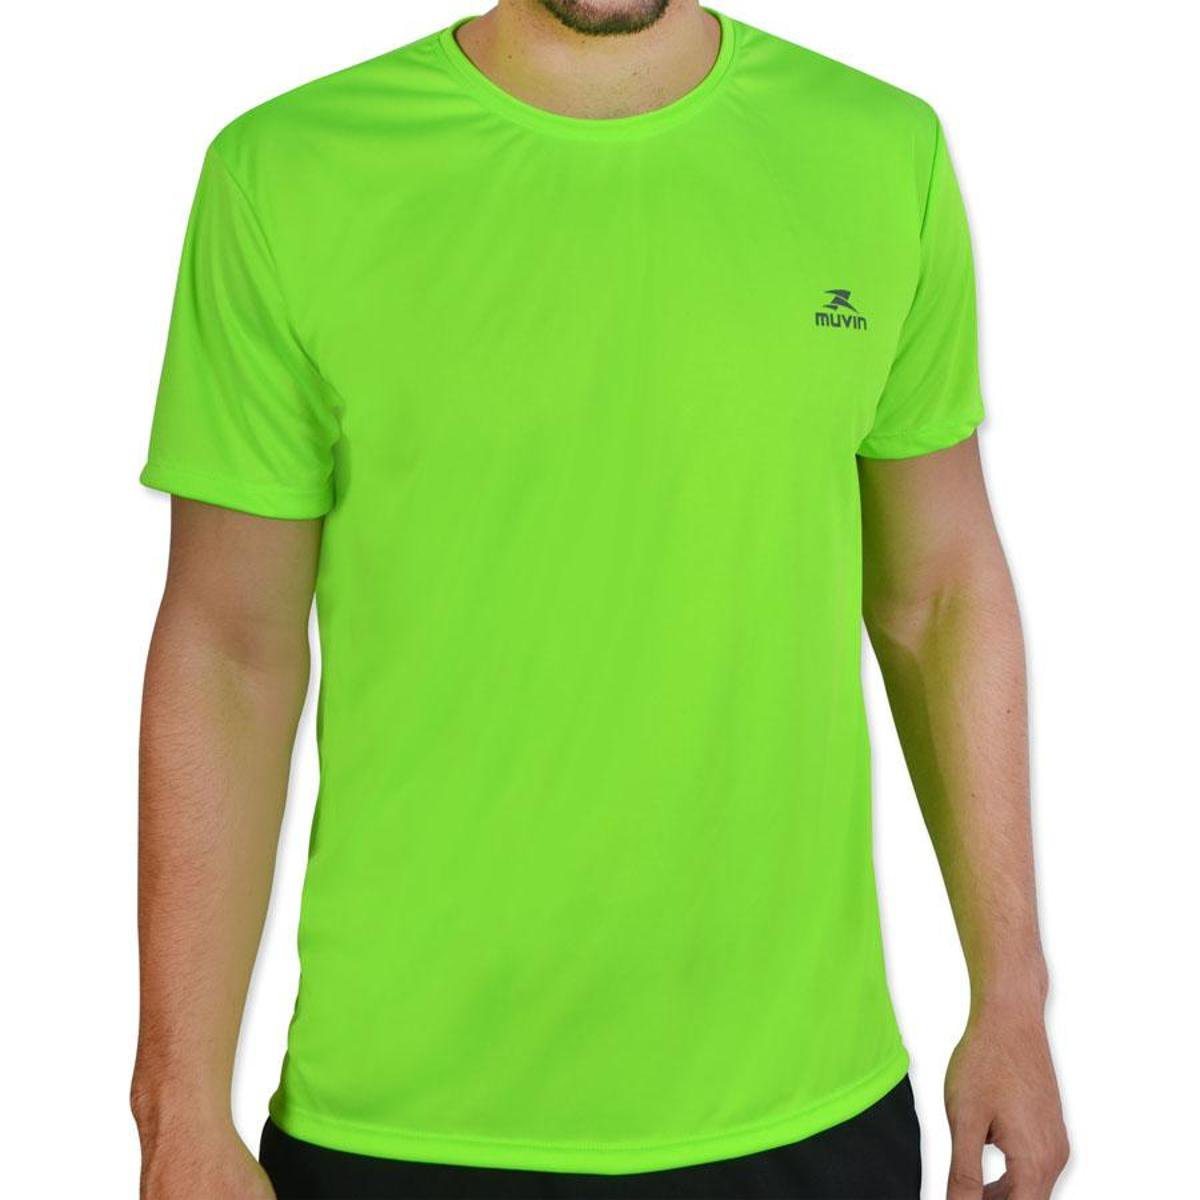 Color Dry Camiseta Color Limão SS Workout Dry Muvin Camiseta Verde w1I1q4t